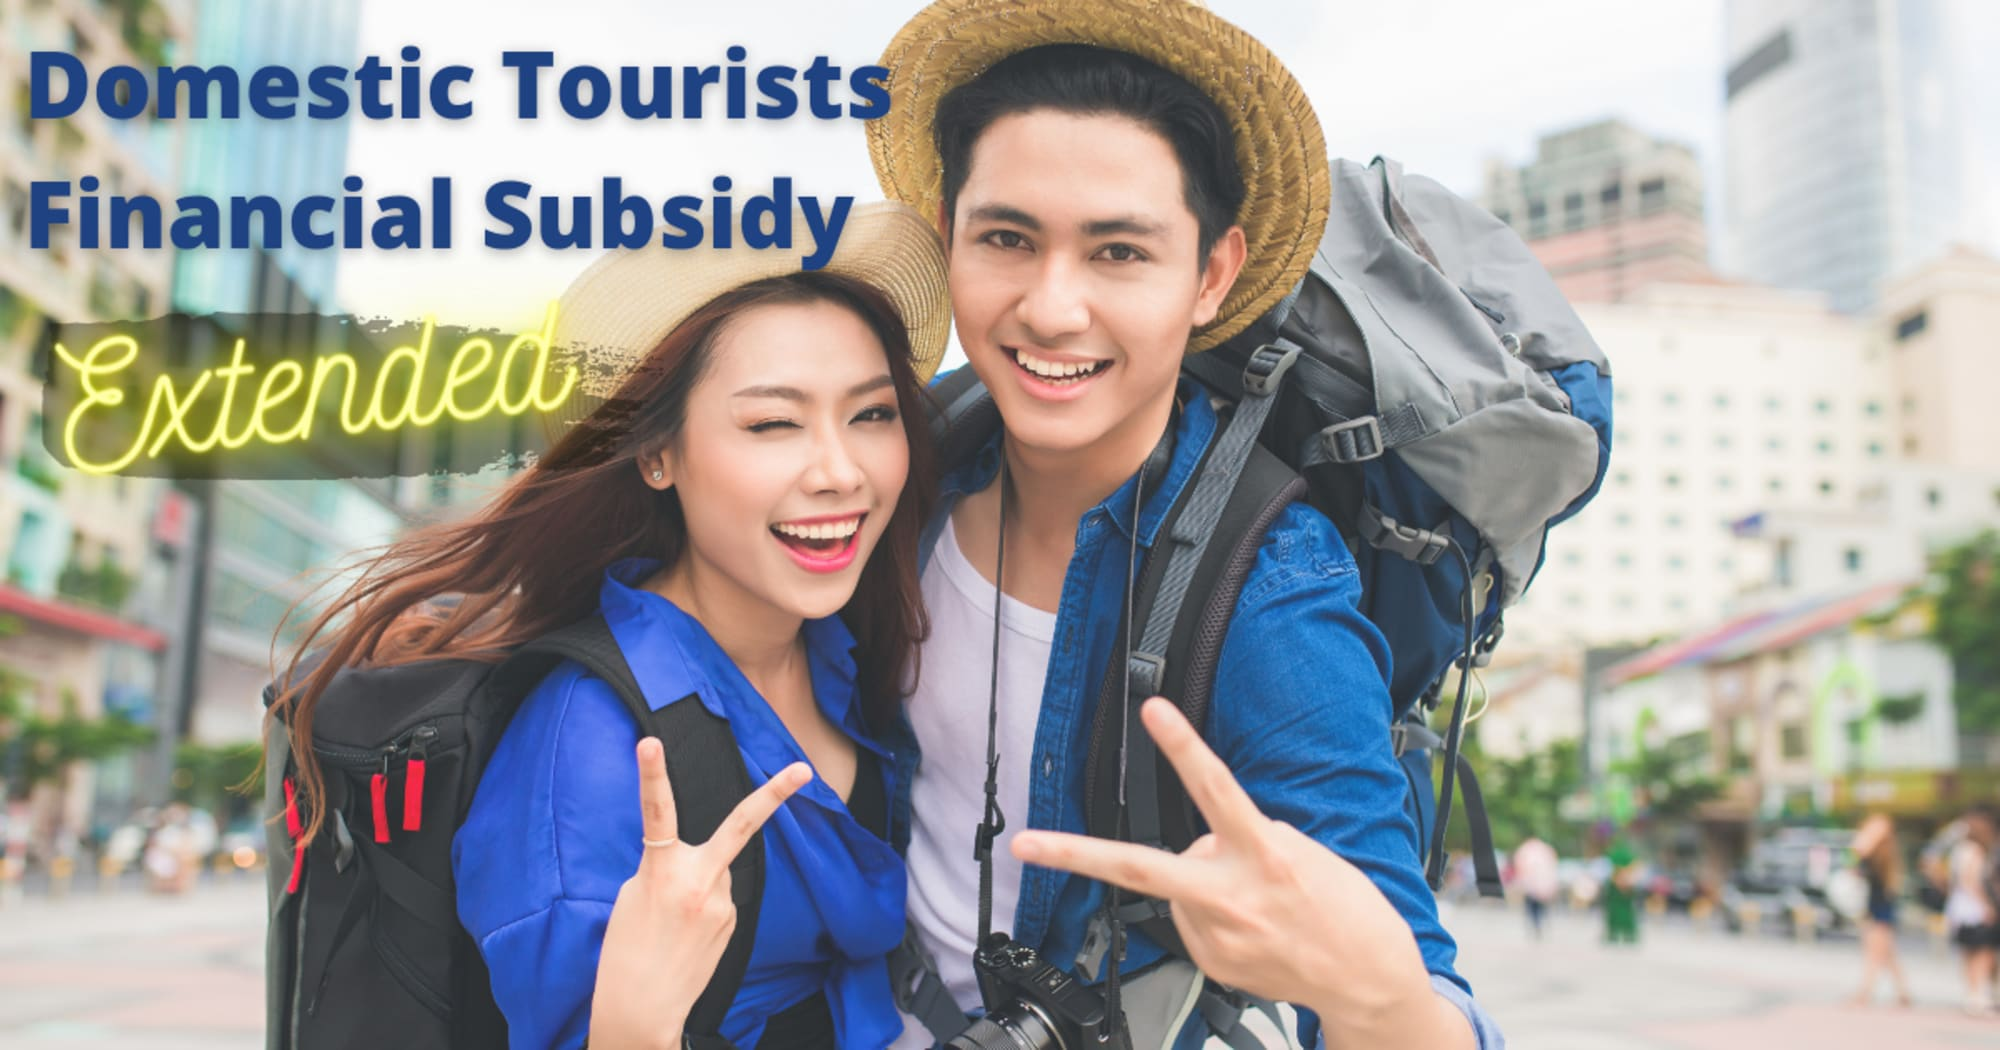 RT-PCR financial subsidy program for domestic tourists has been extended